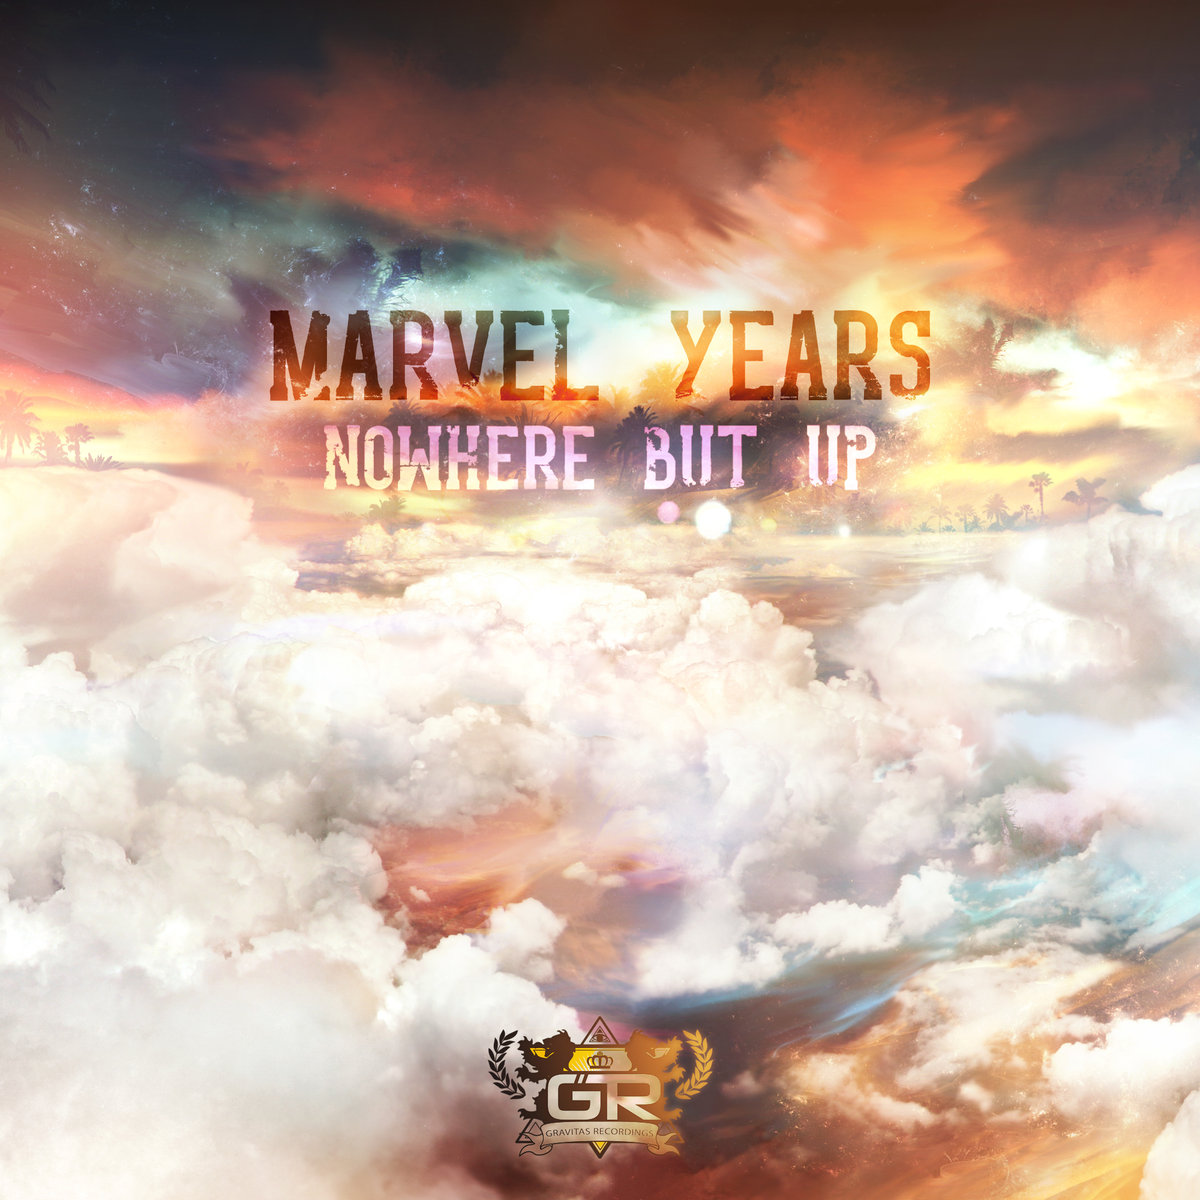 Marvel Years - Break The Chain @ 'Nowhere But Up' album (hip hop, electro)